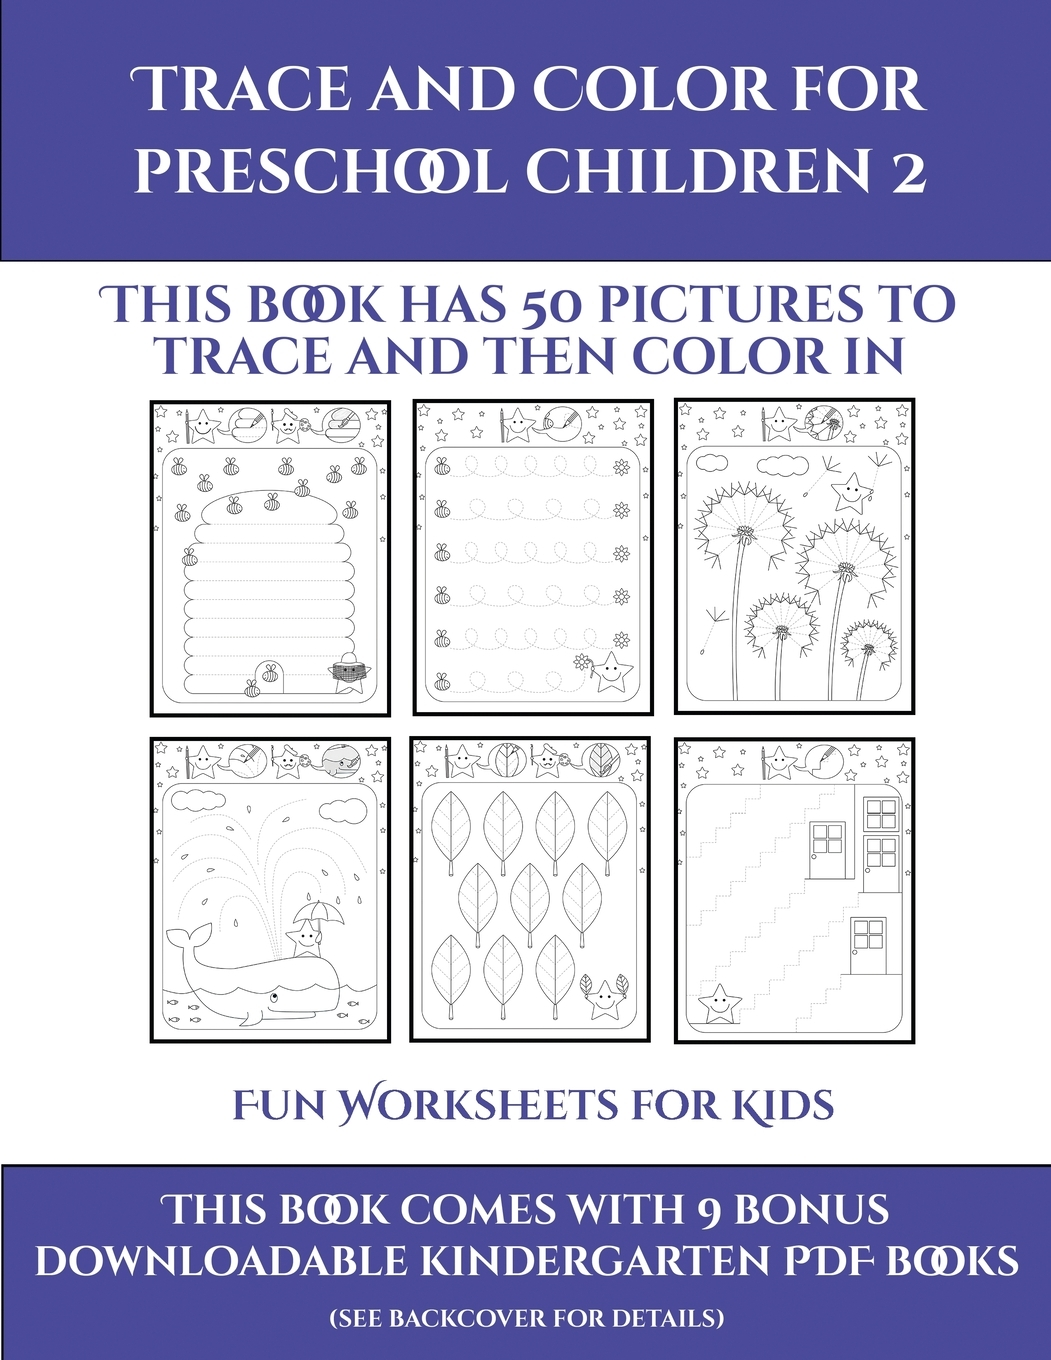 Fun Worksheets For Kids Fun Worksheets For Kids Trace